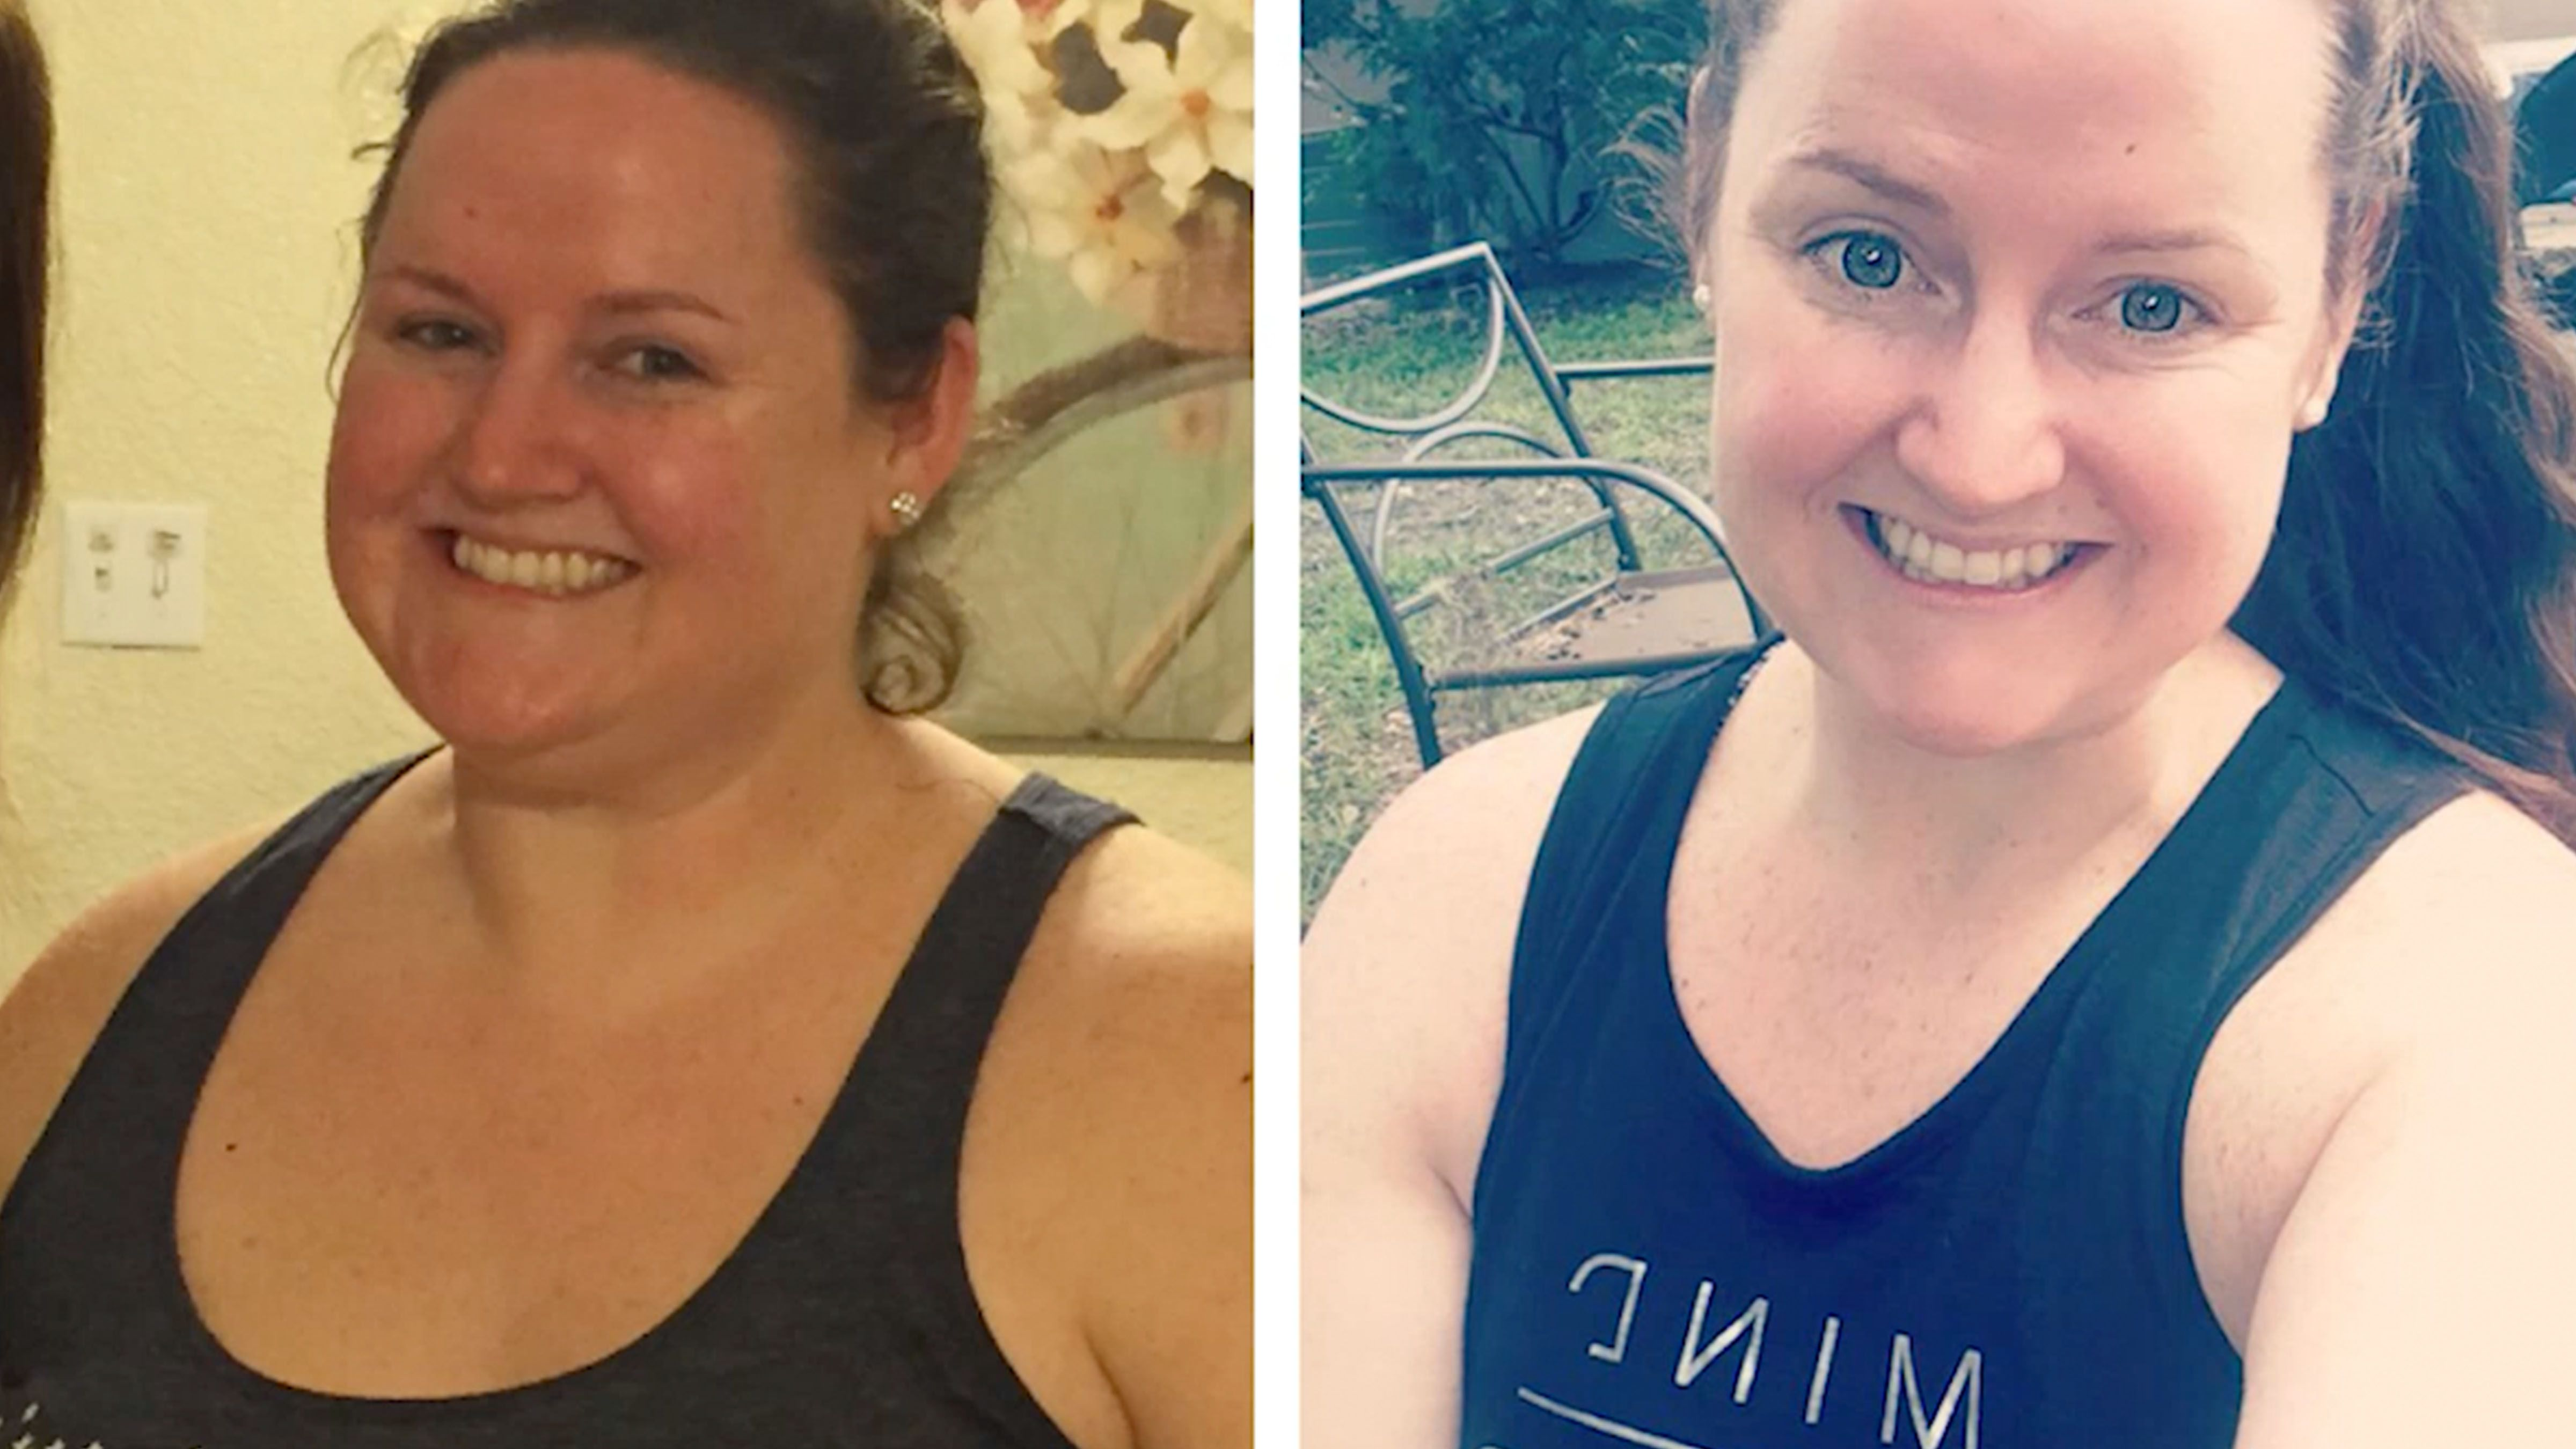 Down 80 Pounds With Running, This Woman Keeps Going on Her Weight-Loss Journey